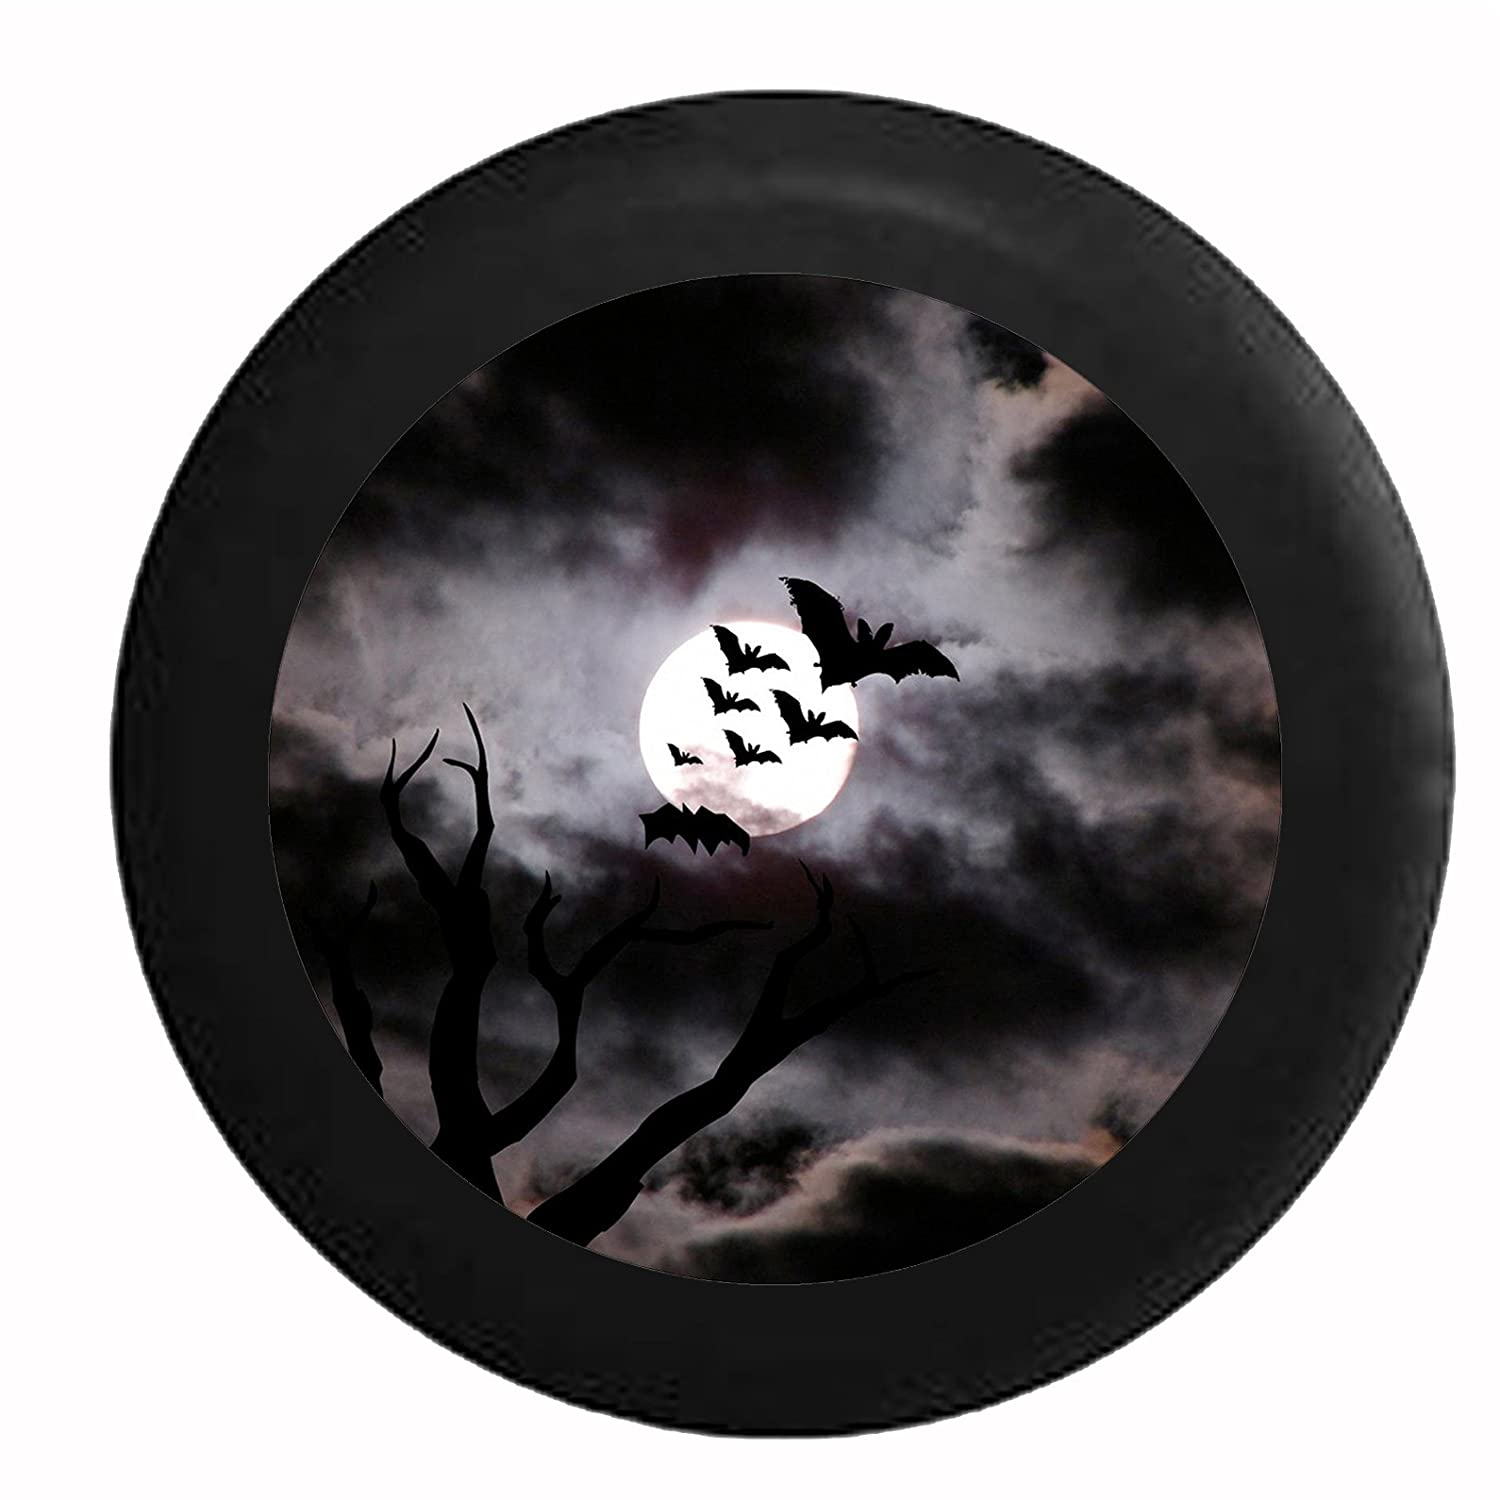 Full Color Bats Flying in the Night Sky in the Full Moon Jeep RV Camper Spare Tire Cover Black 26-27.5 in Pike Outdoors